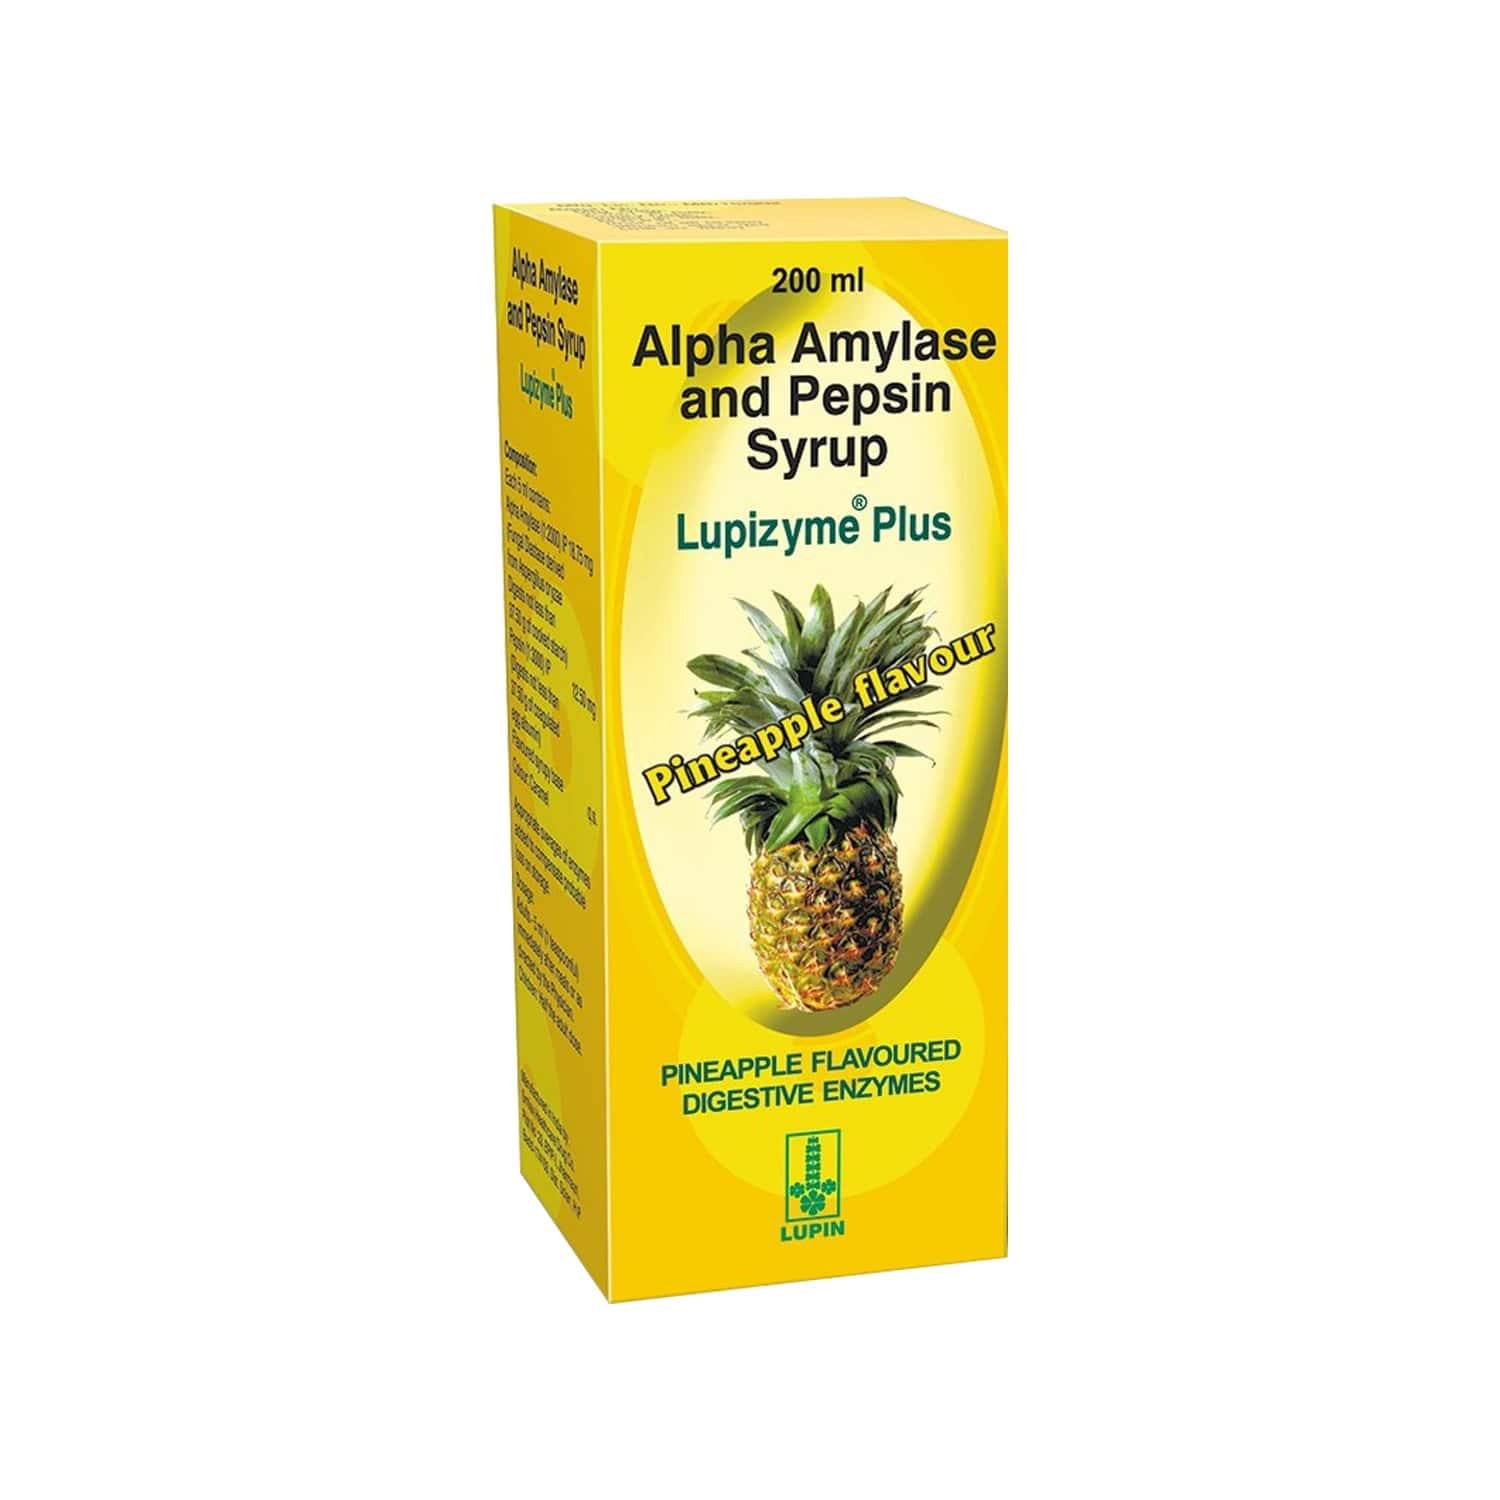 Lupizyme Plus Pineapple Digiestion Syrup Bottle Of 200 Ml